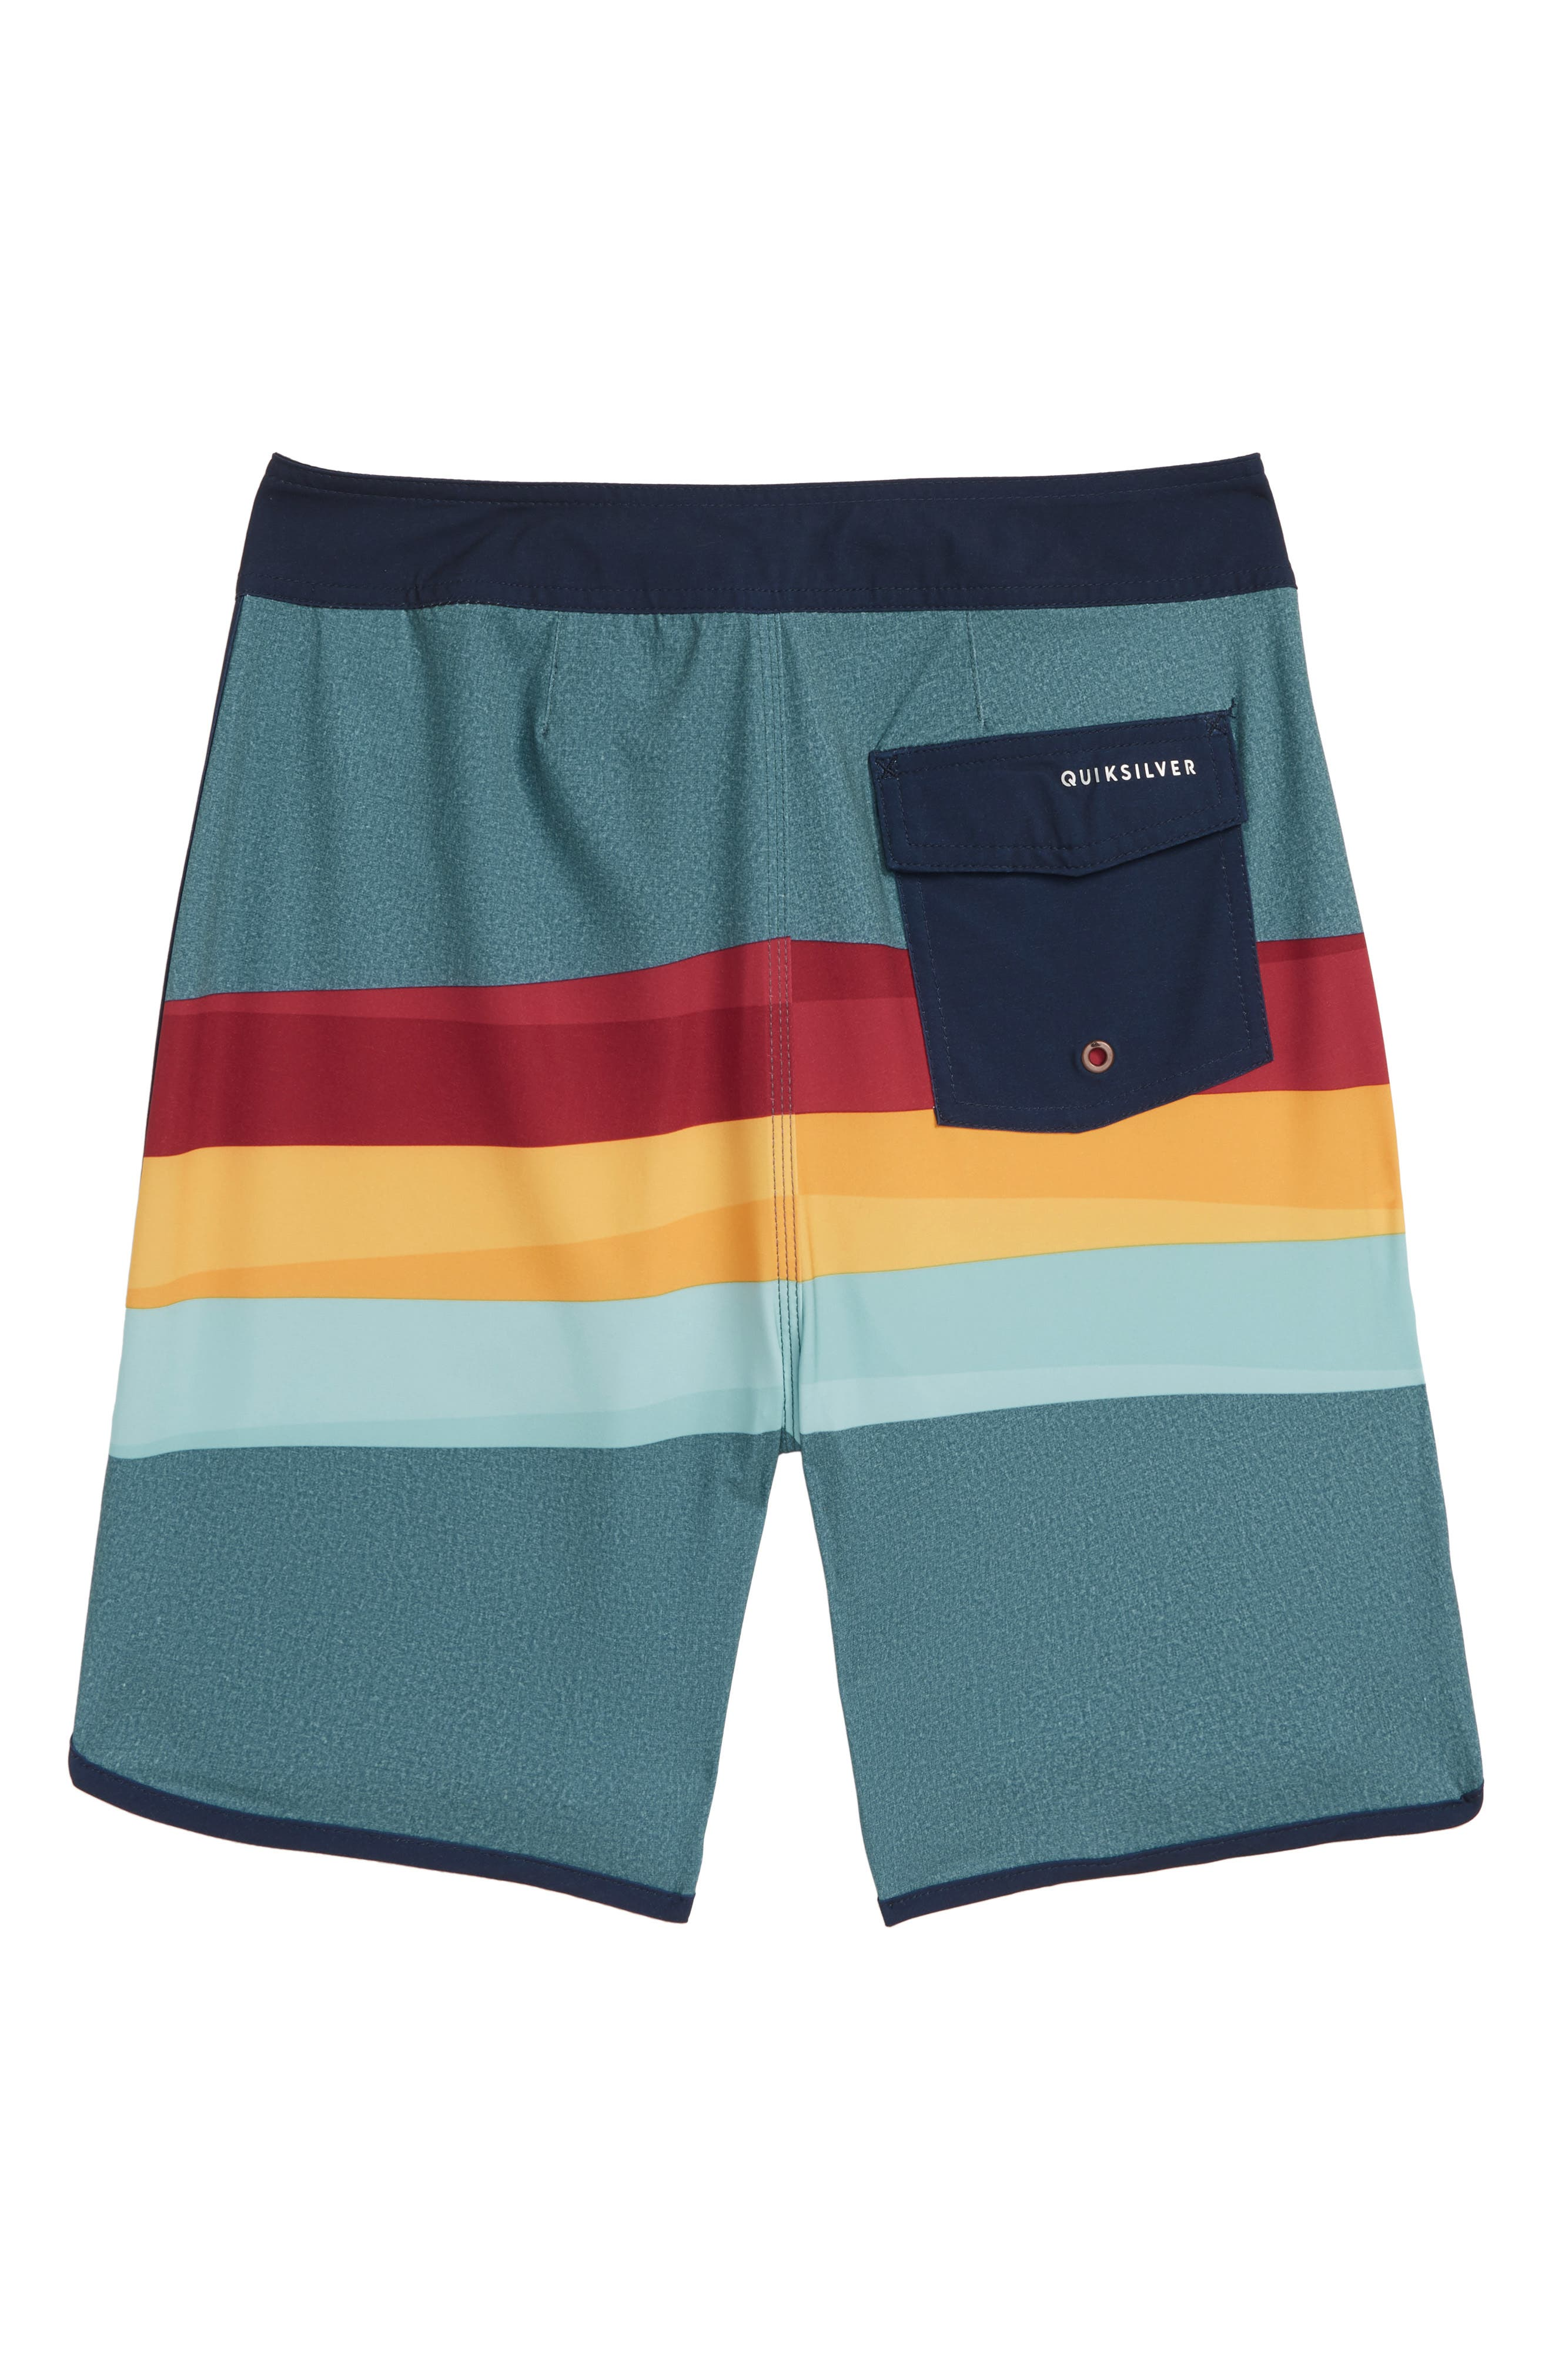 Highline Reverse Board Shorts,                             Alternate thumbnail 2, color,                             400